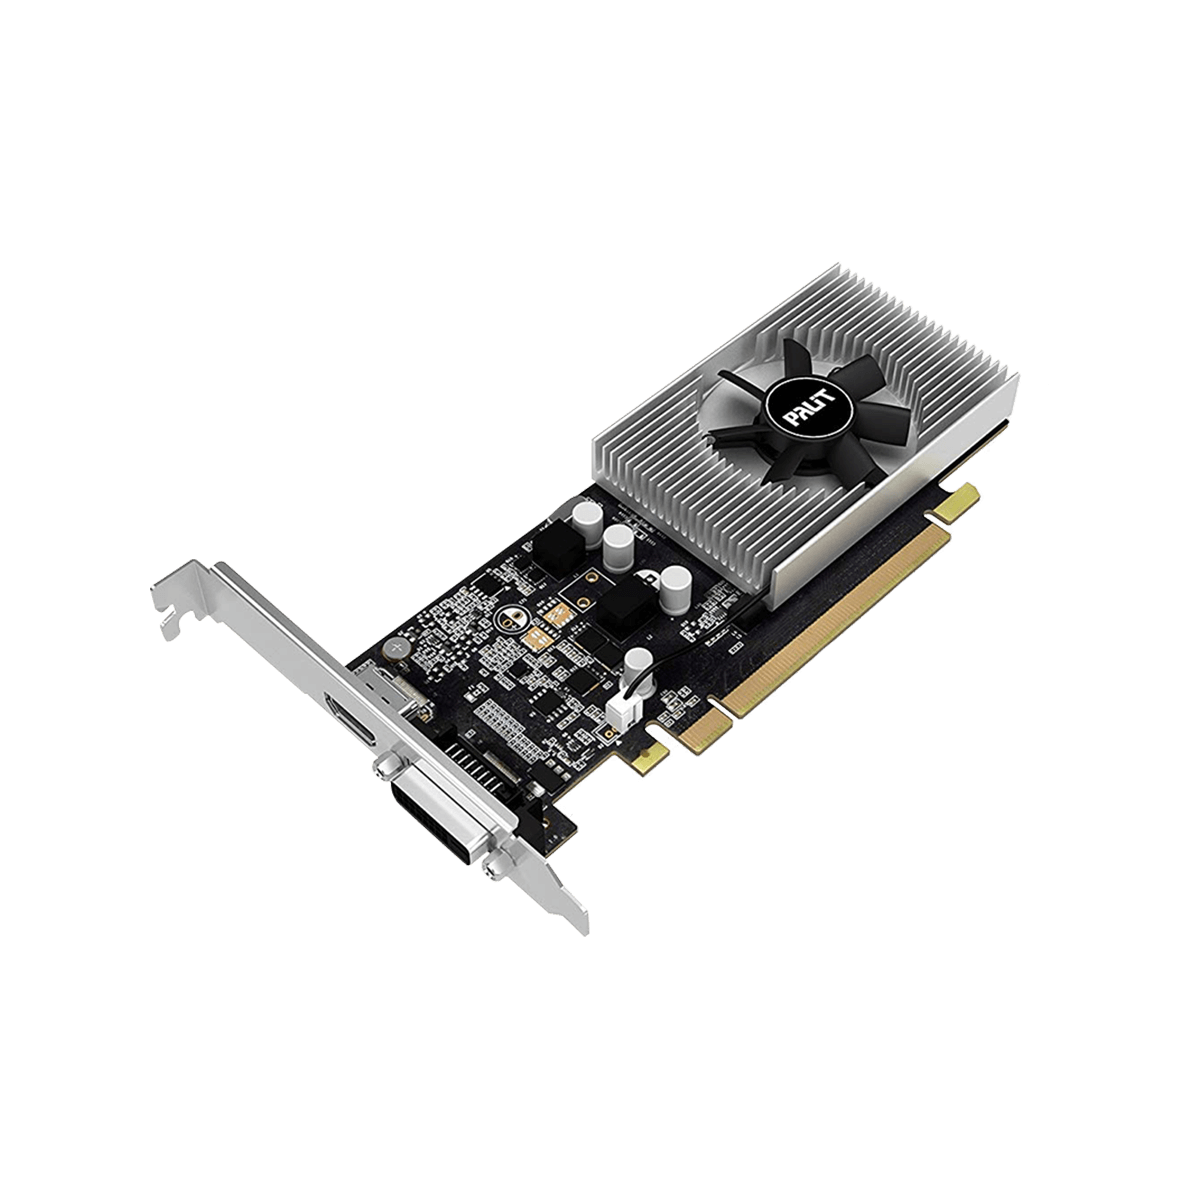 Palit GeForce GT1030 Videocard 2gb-64bit ddr5, for High Settings Gaming  Experience, for Office multi tasking, for AUTOCAD and ADOBE softwares,  Built